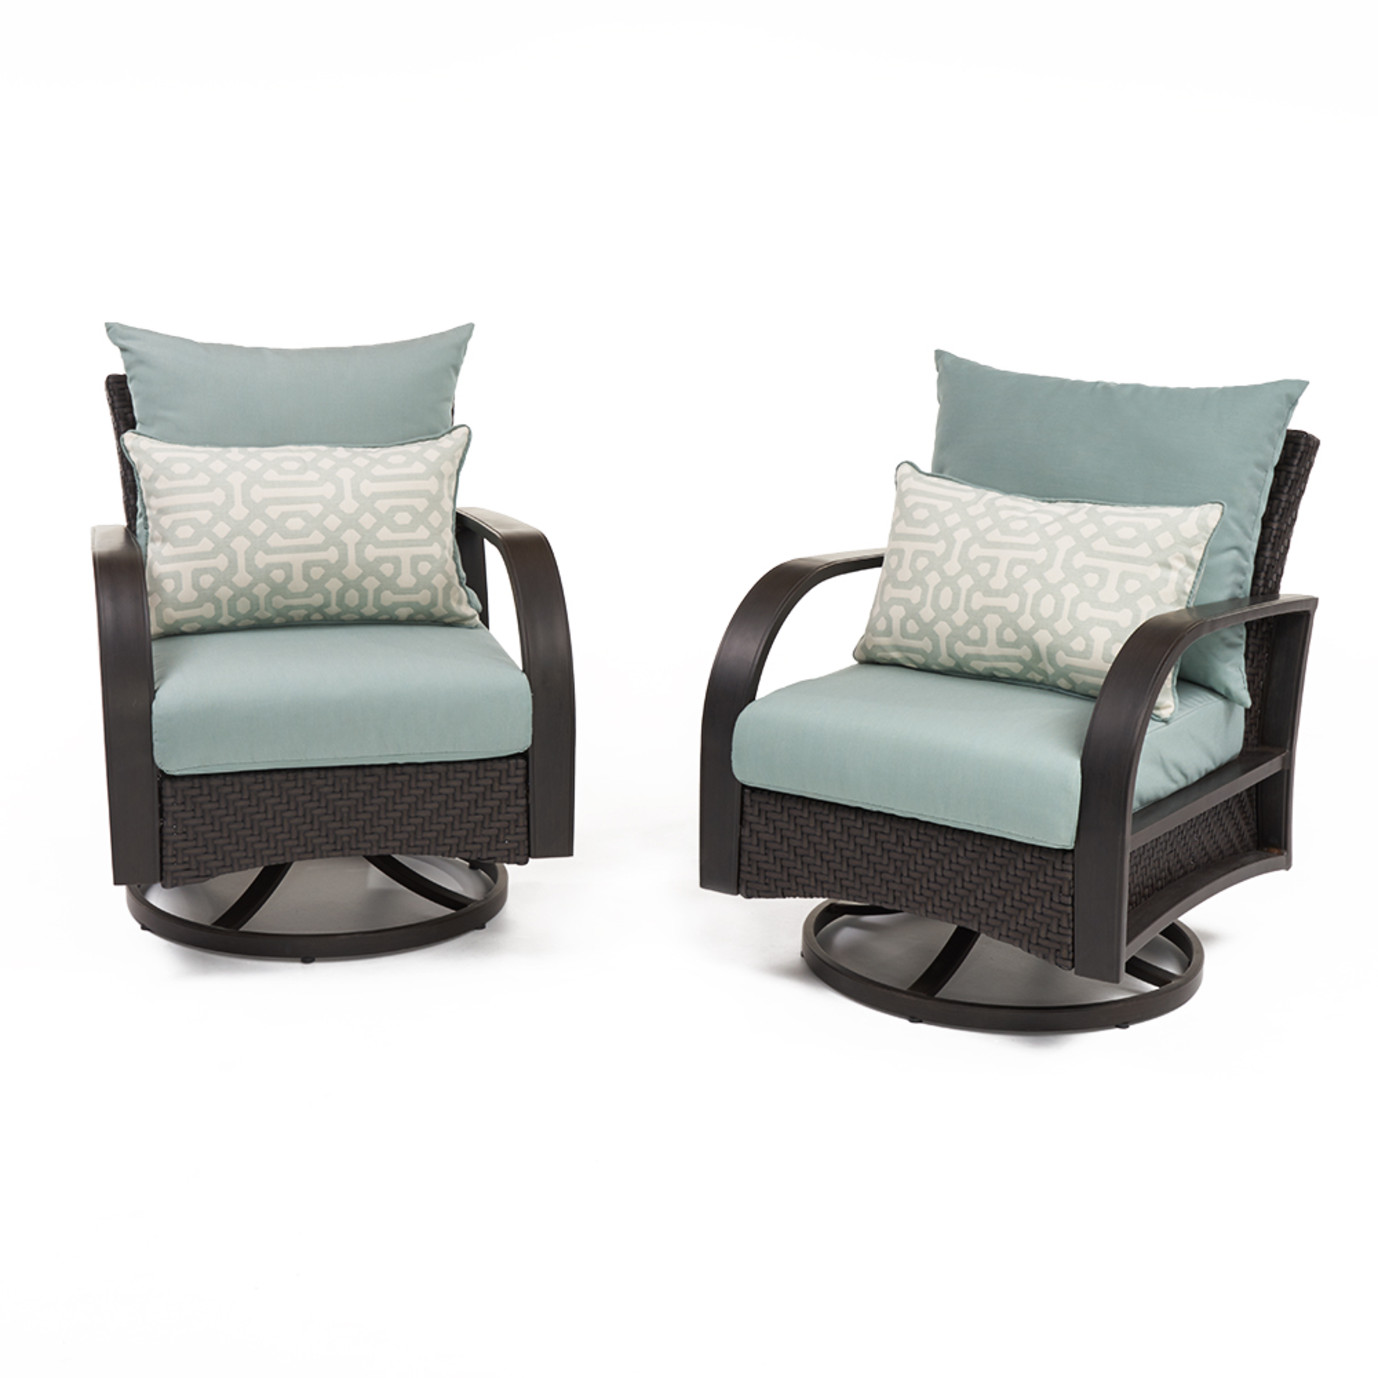 Barcelo™ Motion Club Chairs - Spa Blue